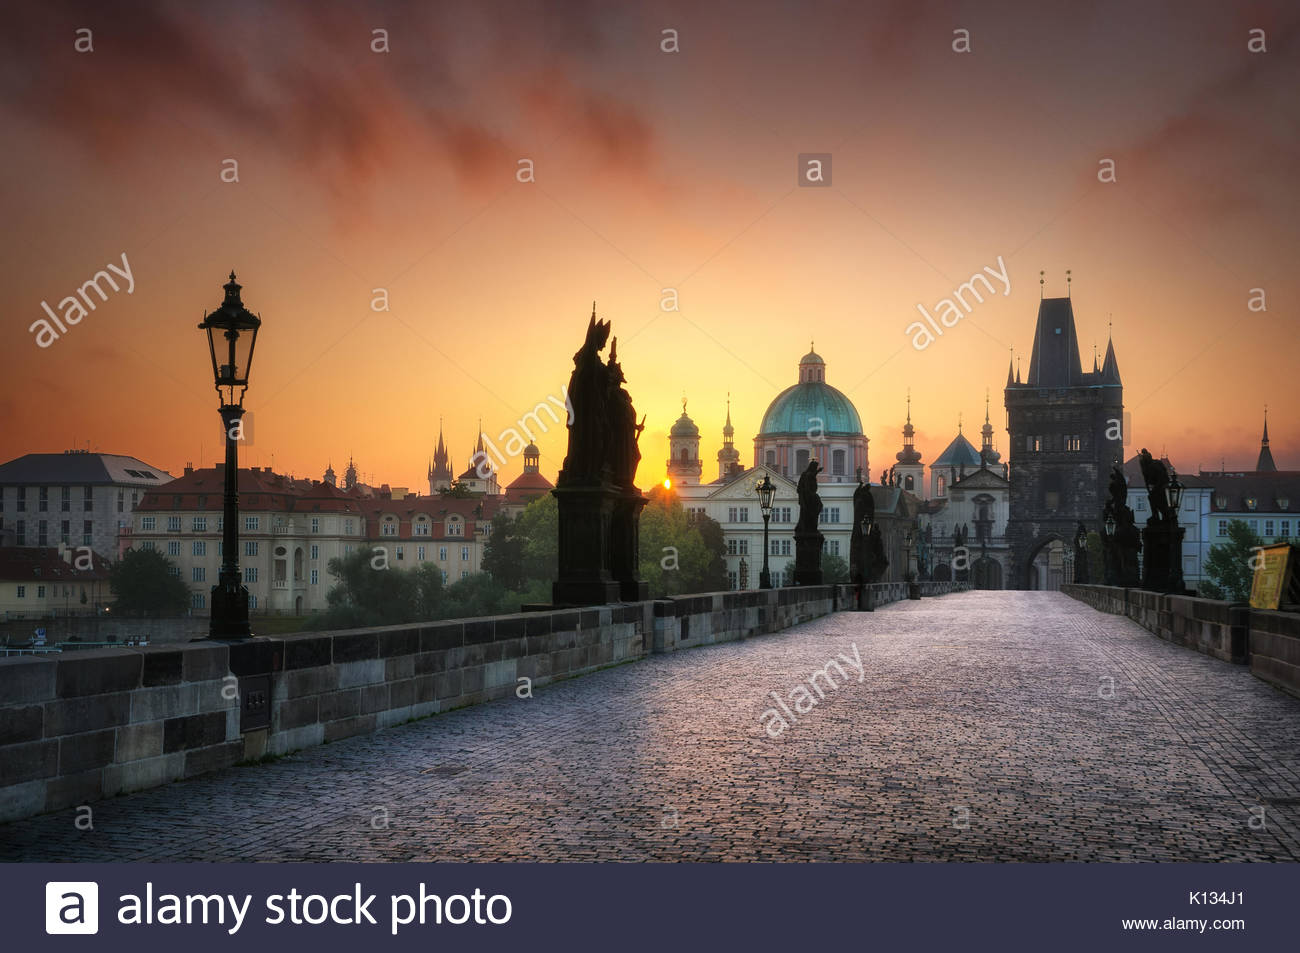 Calm sunrise at Charles bridge without people, Prague, Czech republic - Stock Image